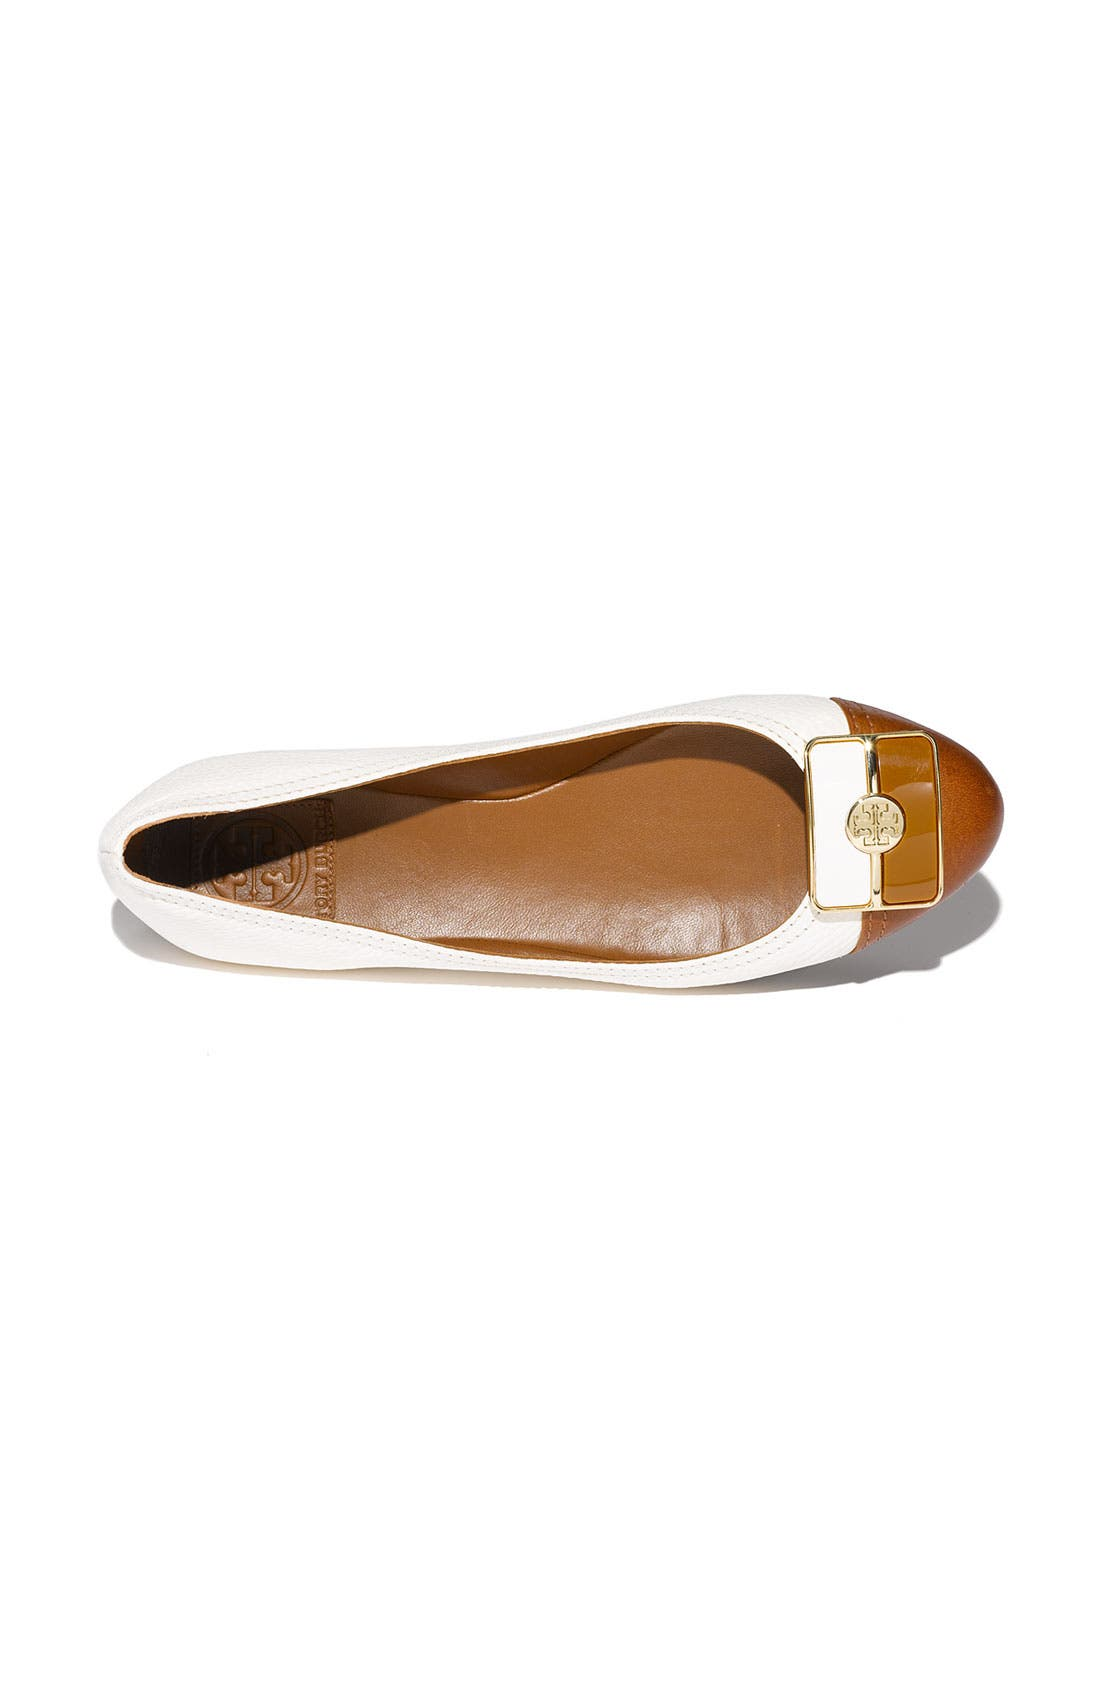 Alternate Image 4  - Tory Burch 'Colette' Ballet Flat